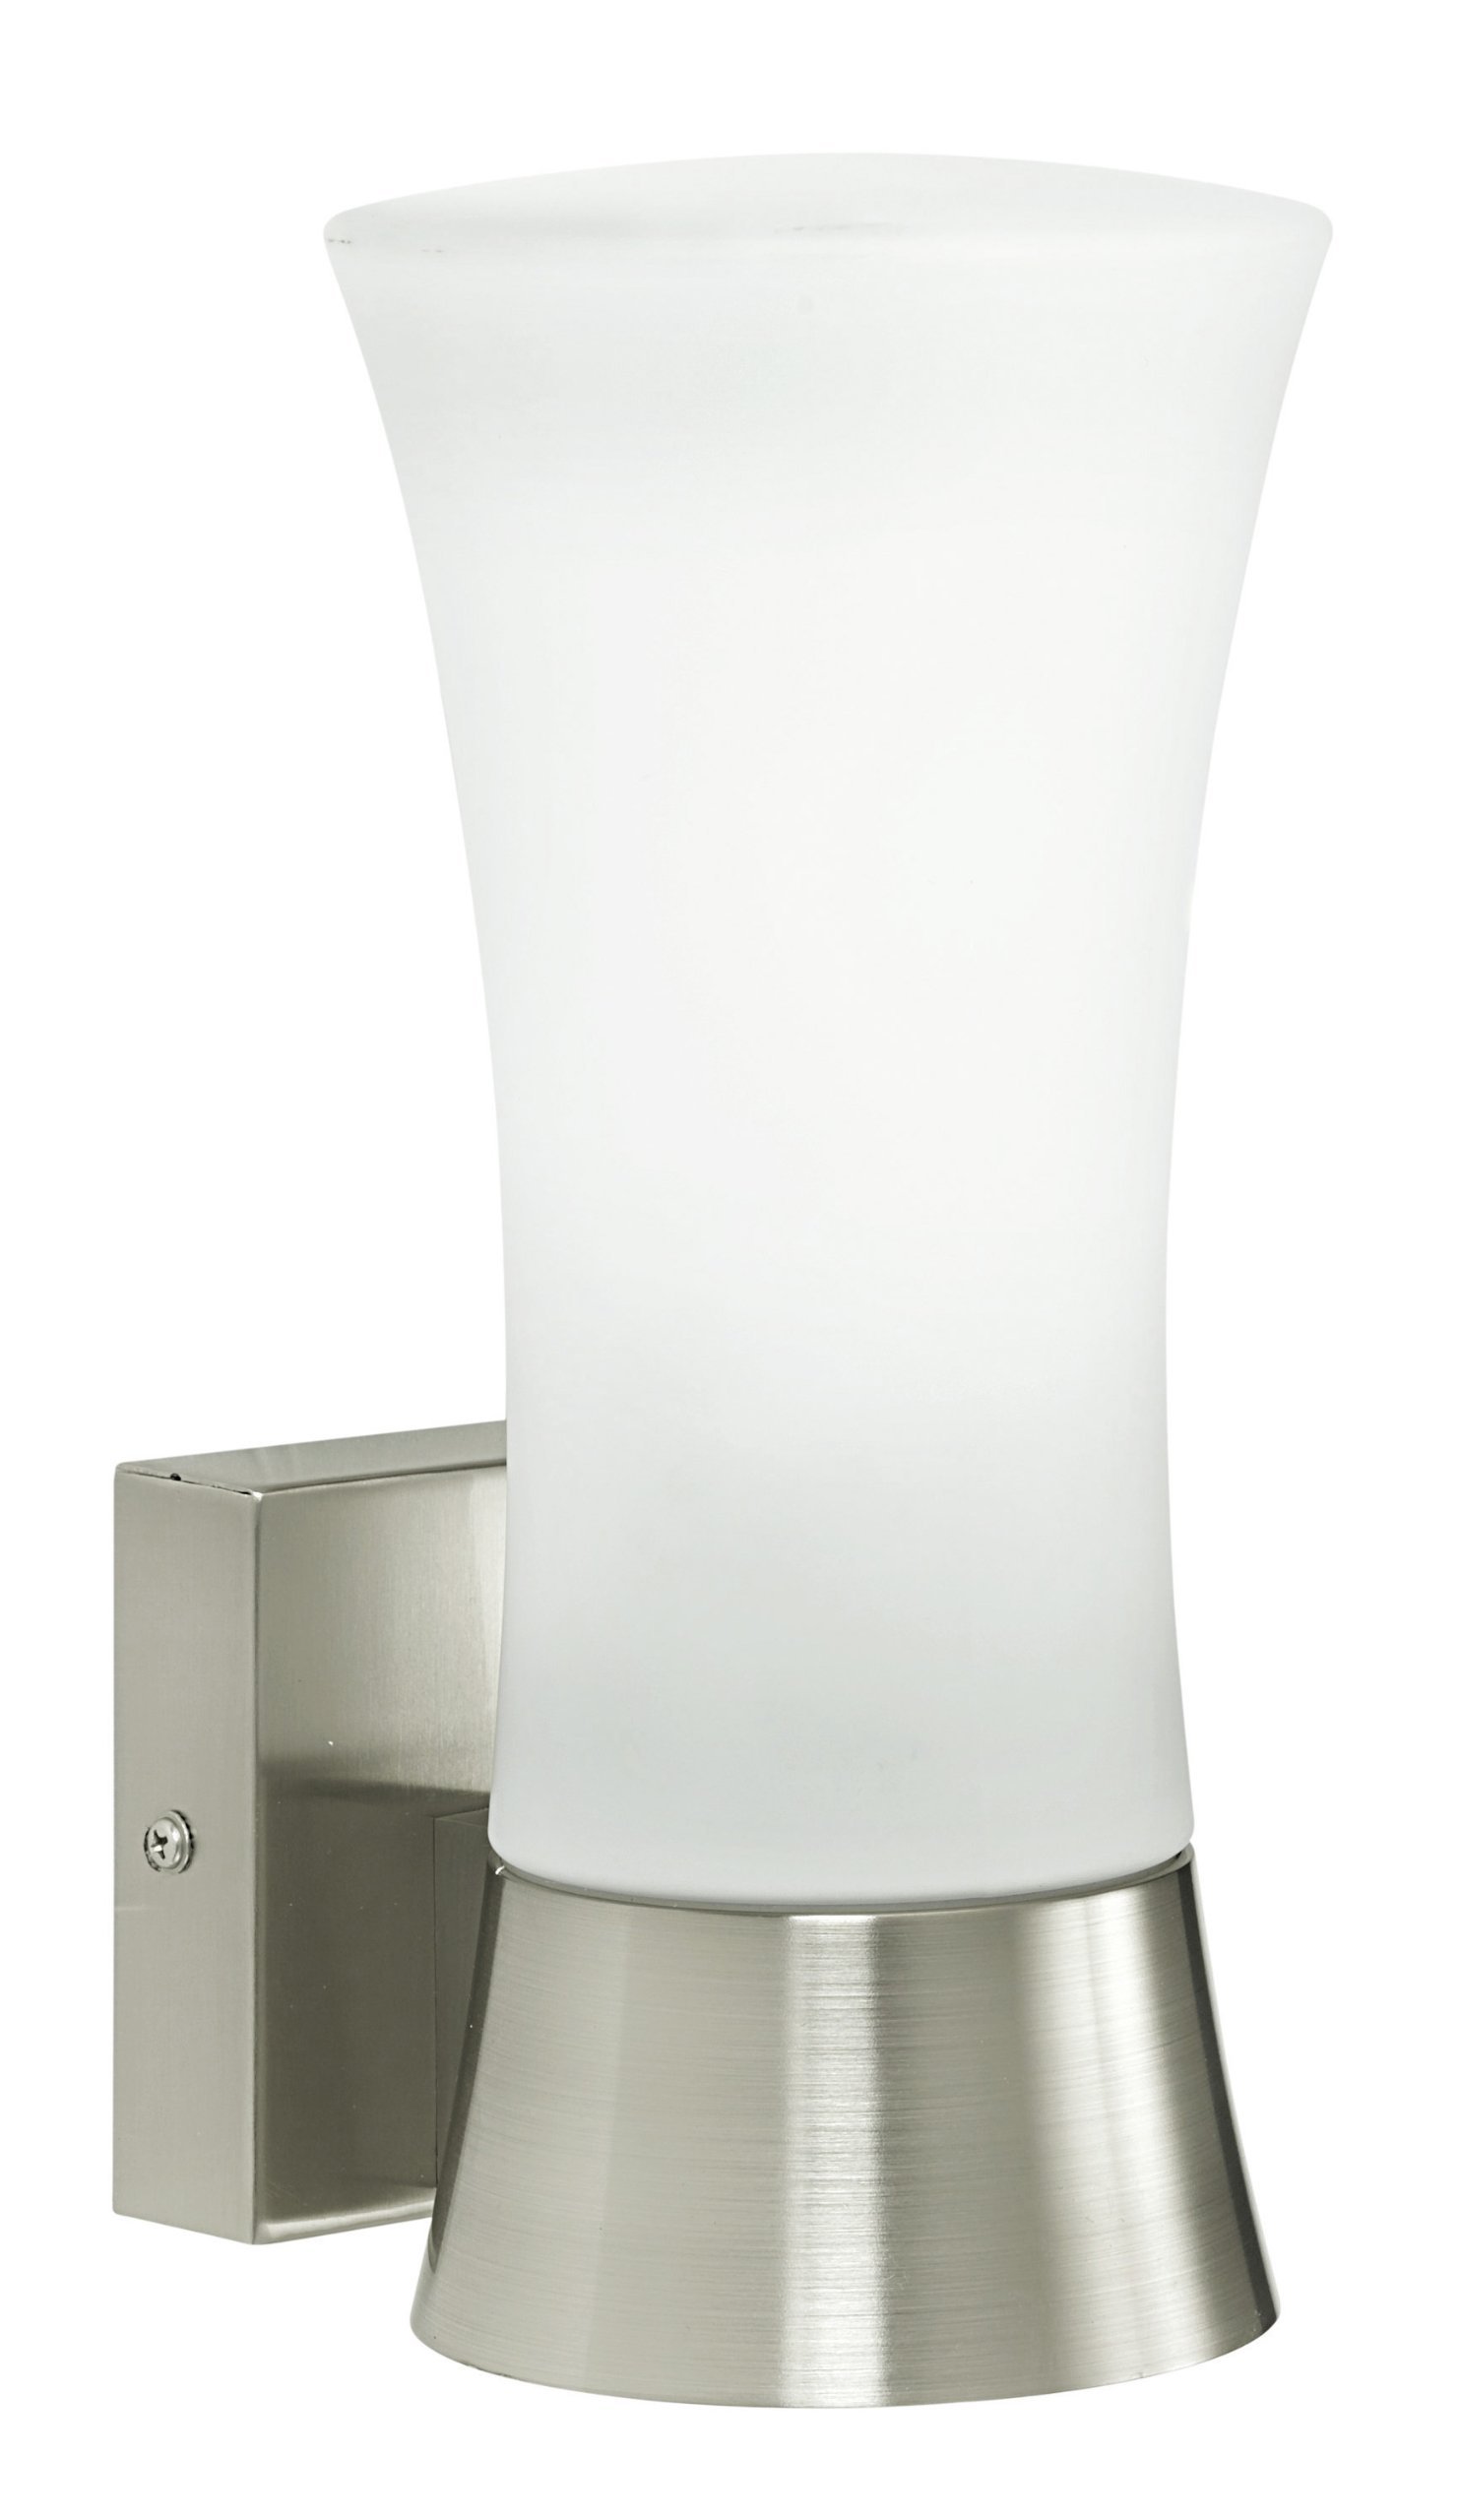 Eglo 88725A Outdoor Wall Light with Opal Frosted Glass, Stainless Steel Finish